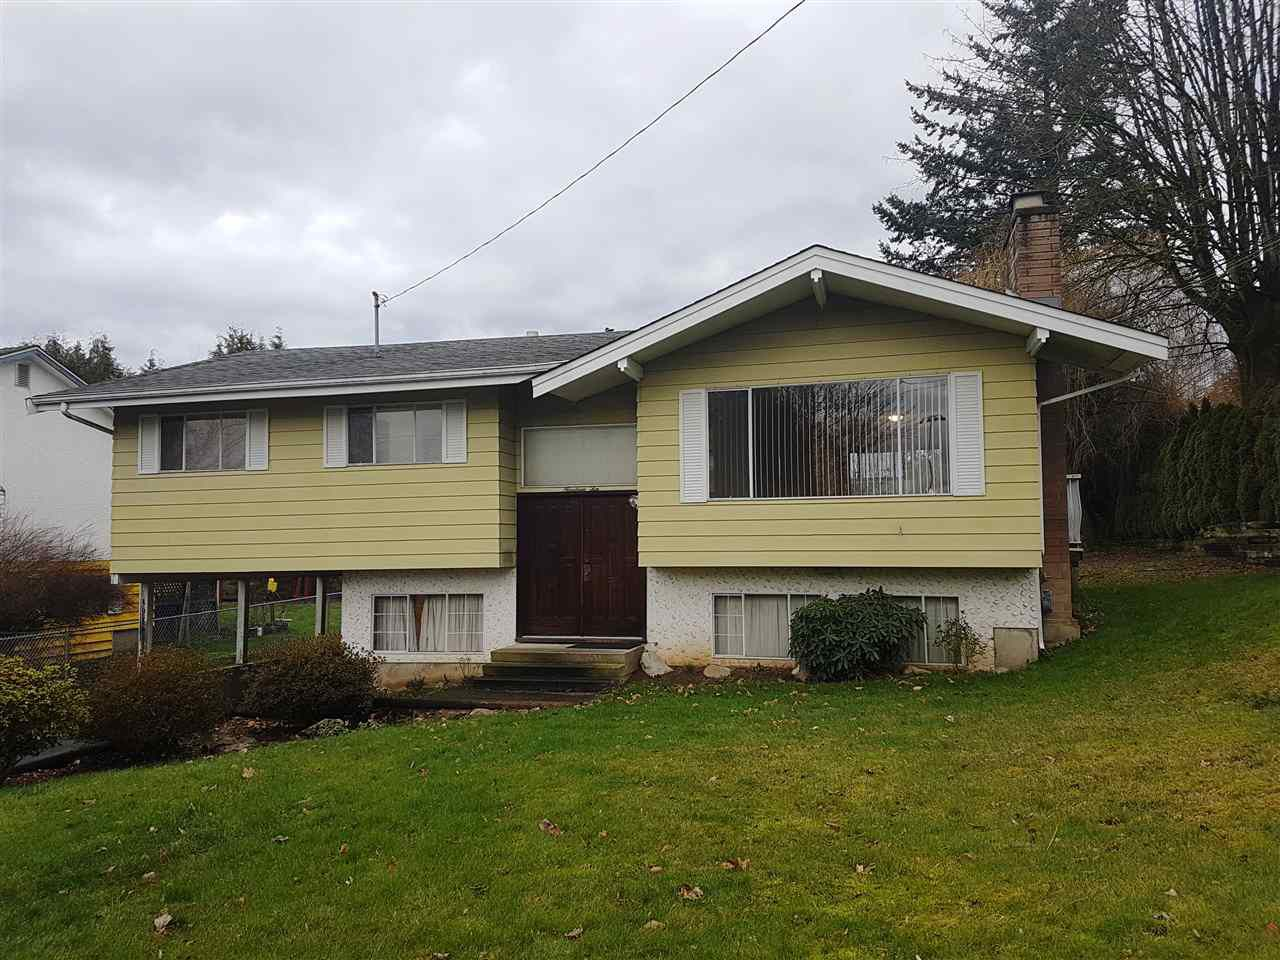 Main Photo: 1910 MCKENZIE Road in Abbotsford: Central Abbotsford House for sale : MLS®# R2330036